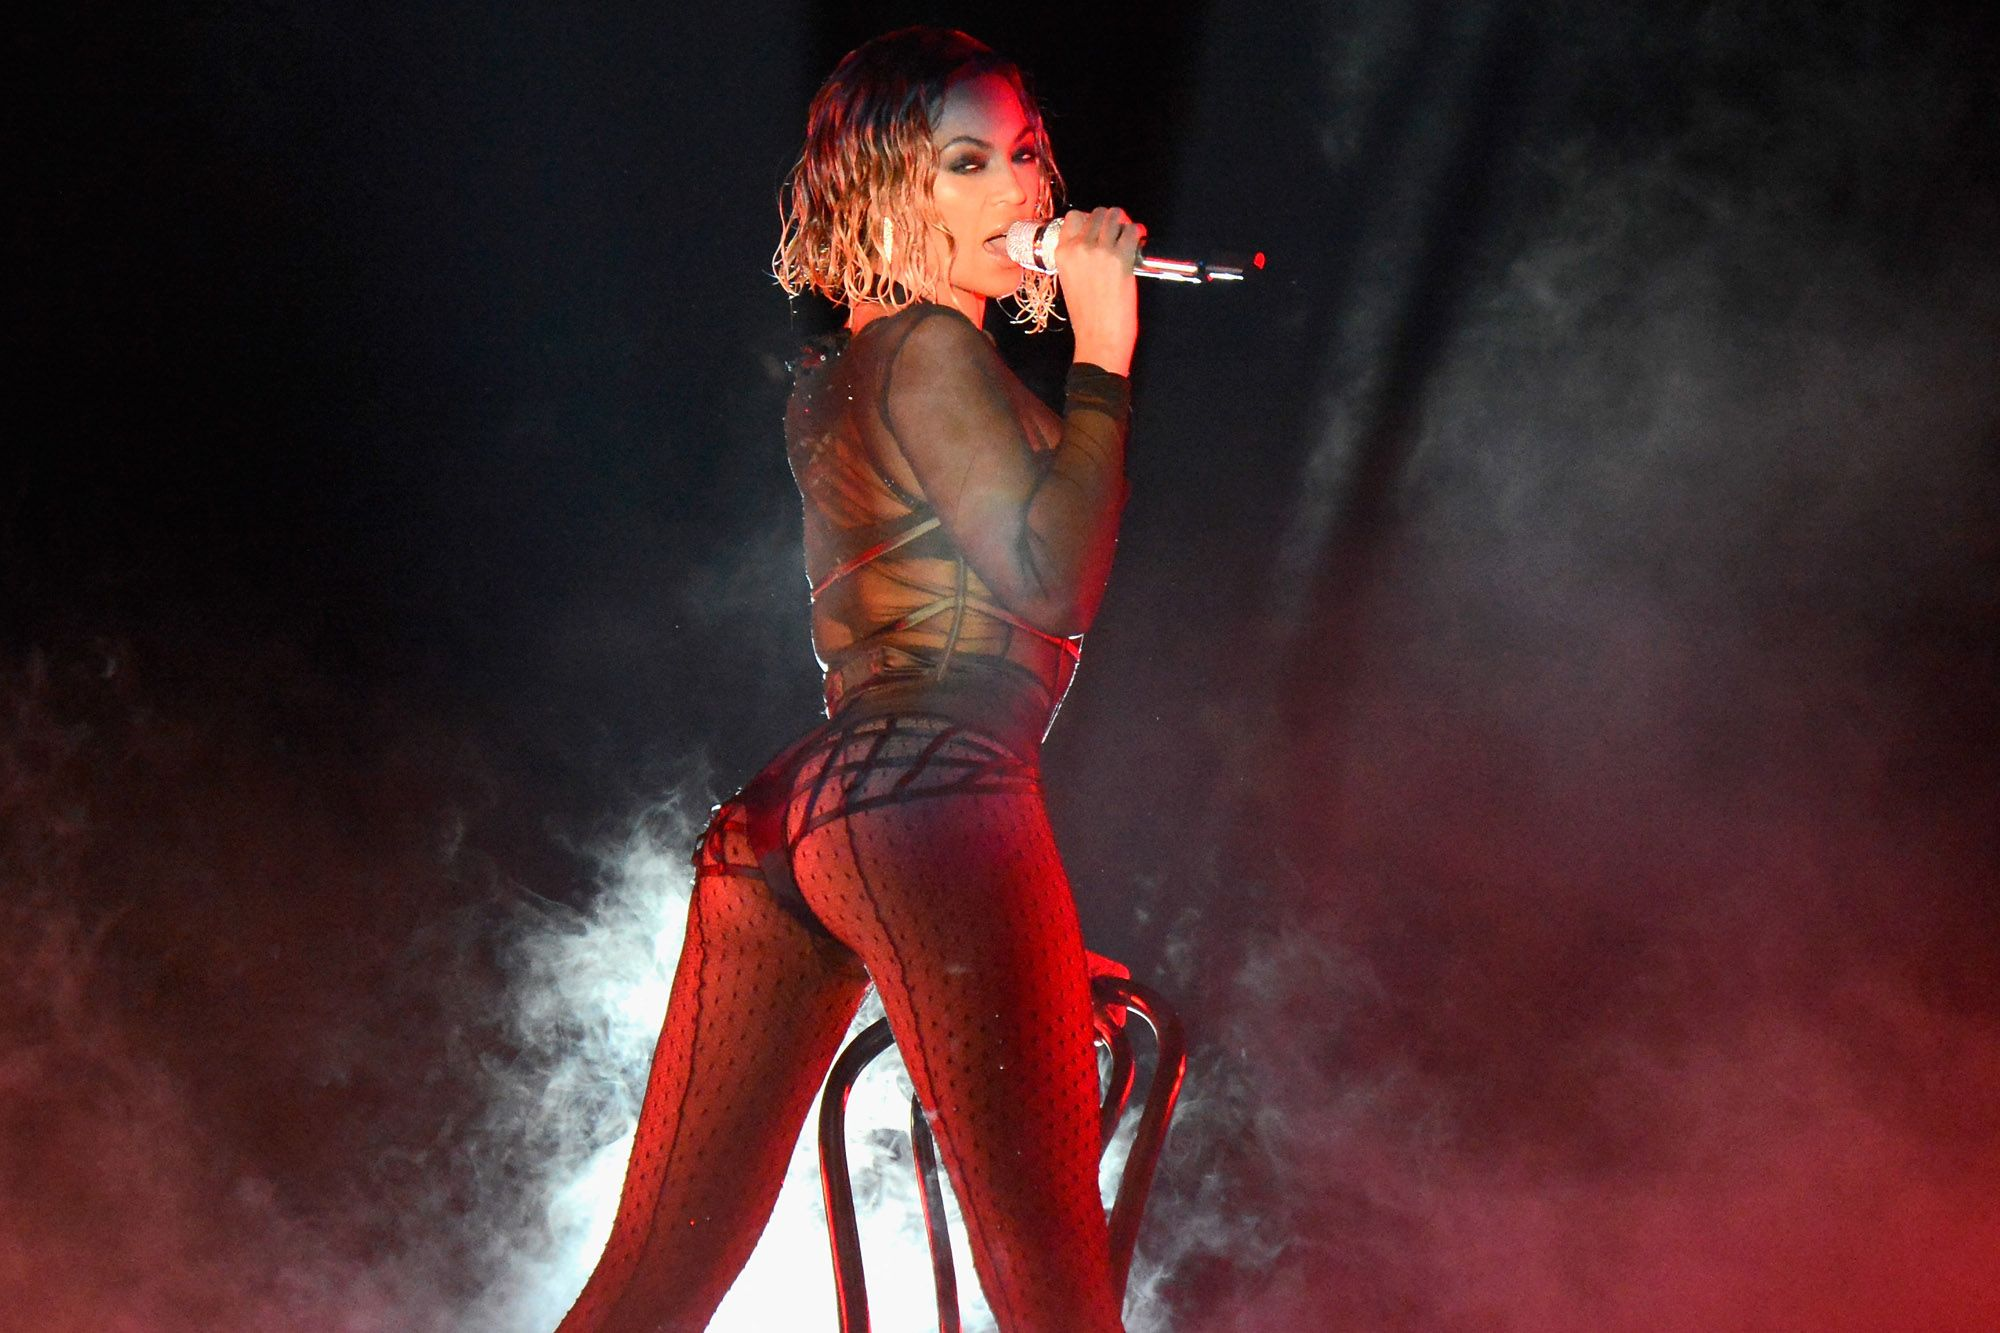 The Black Hoe Ojsan  Thigh Exercises, Beyonce Legs, Thighs-9871